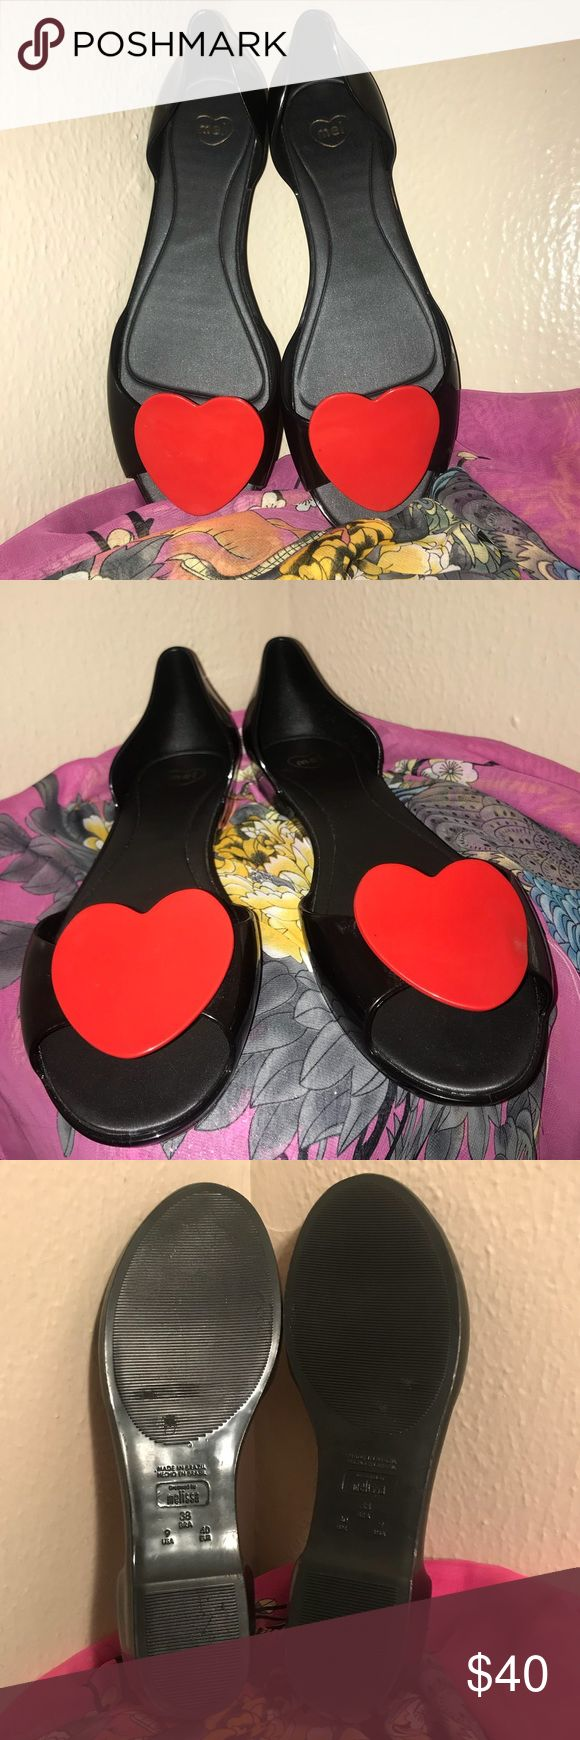 Melissa peeptoe jelly flats black and red valentine heart jelly shoes by none other than Mel dreamed by Melissa. made in Brazil, has the signature yummy bubblegum smell 🍭🍭🍭🍭 I got these but never wore them because they fit me a little big (I wear 8.5 sometimes 9) there is like one tiny scratch on the side of one shoe. u can barely see it. kawaii kicks for a real sweetheart! Mel by Melissa Shoes Flats & Loafers